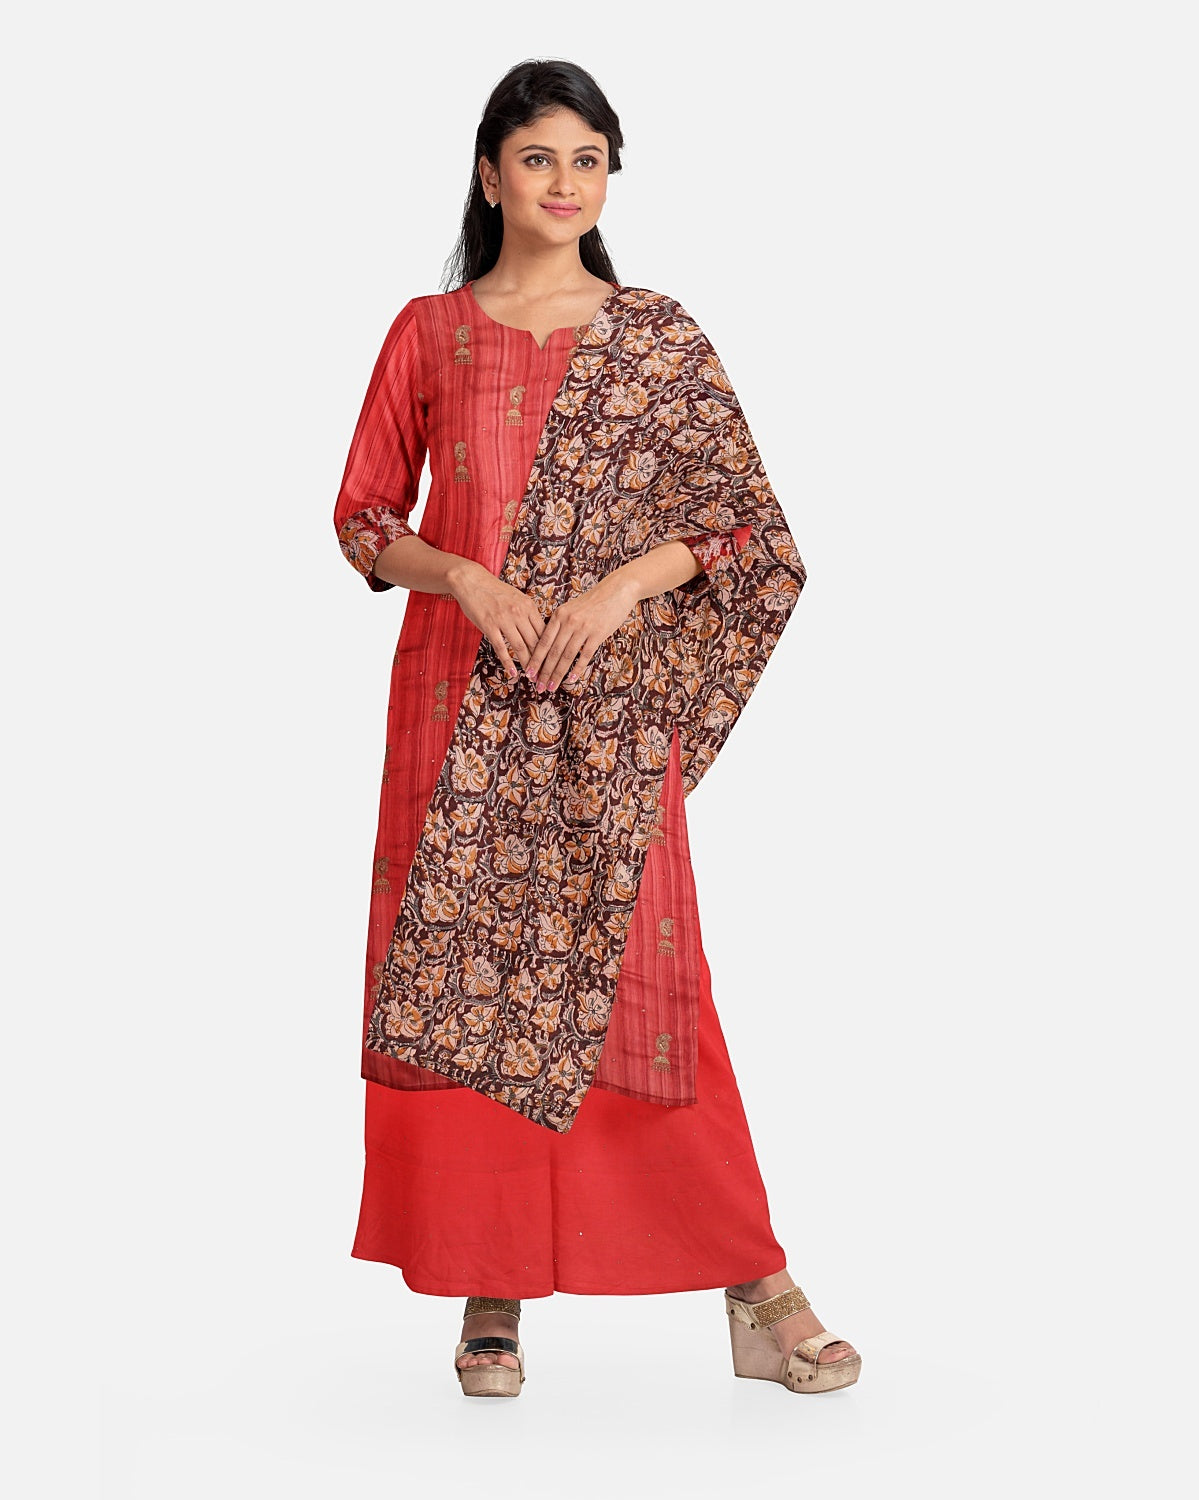 Brick Red Embroidered Raw Silk Suit Fabric Set